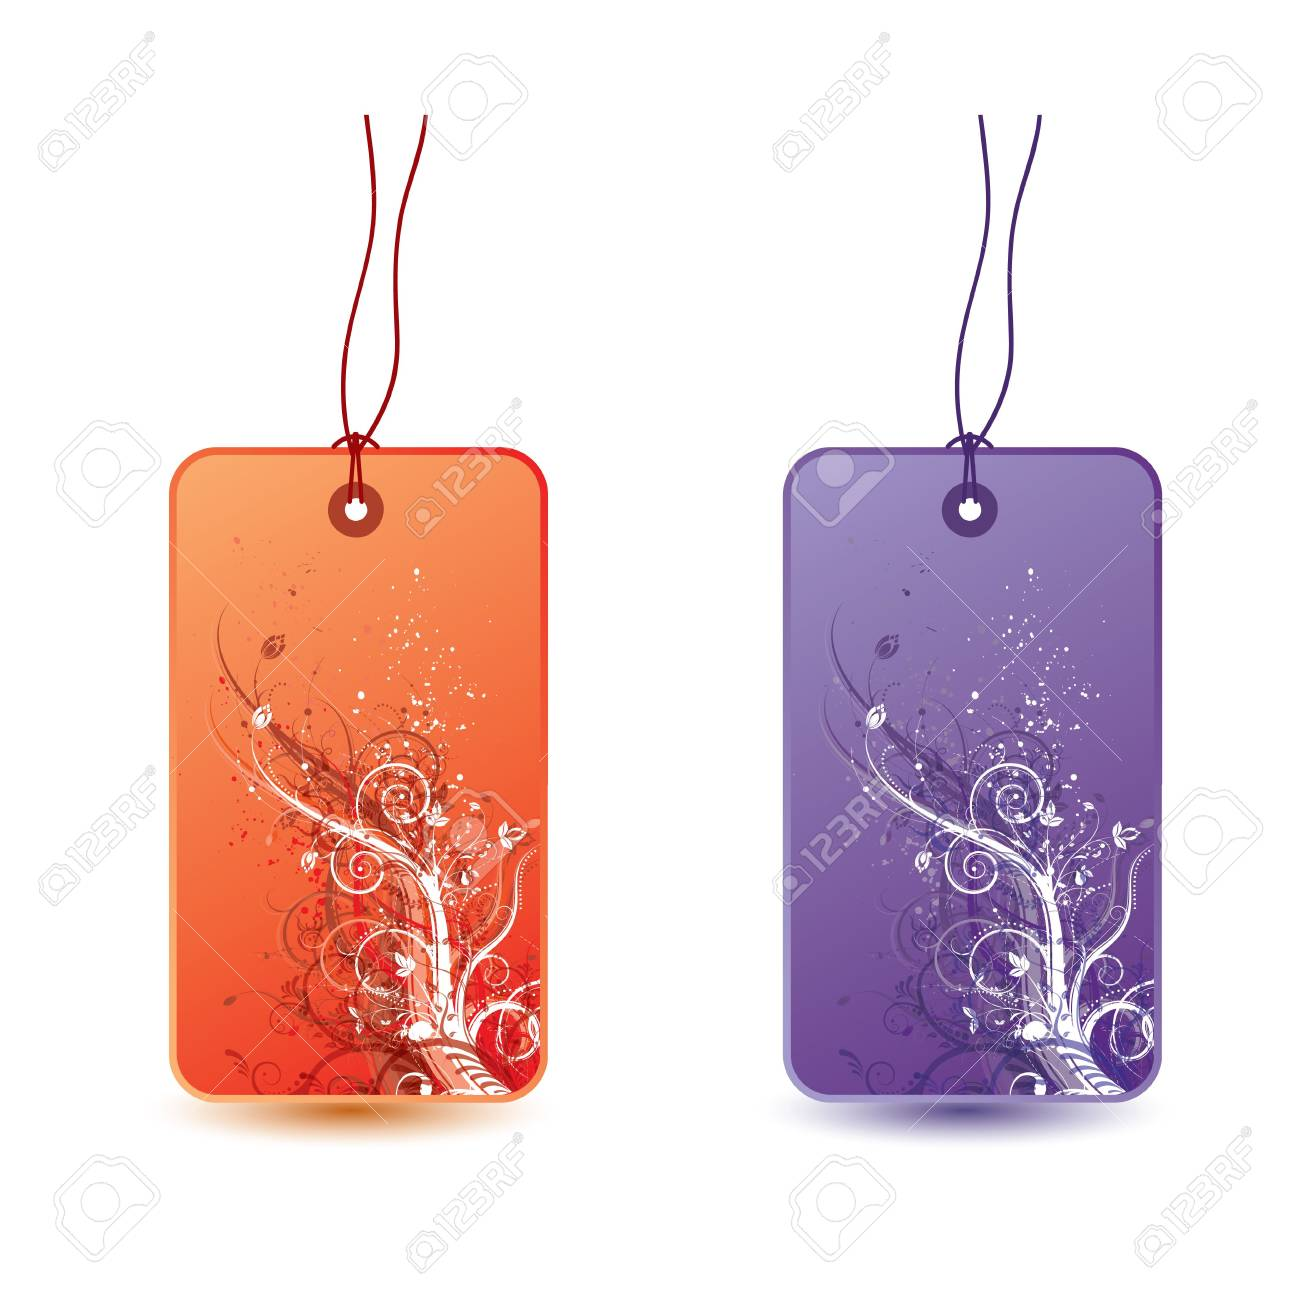 Floral tags with grunge elements, illustration Stock Illustration - 6652492